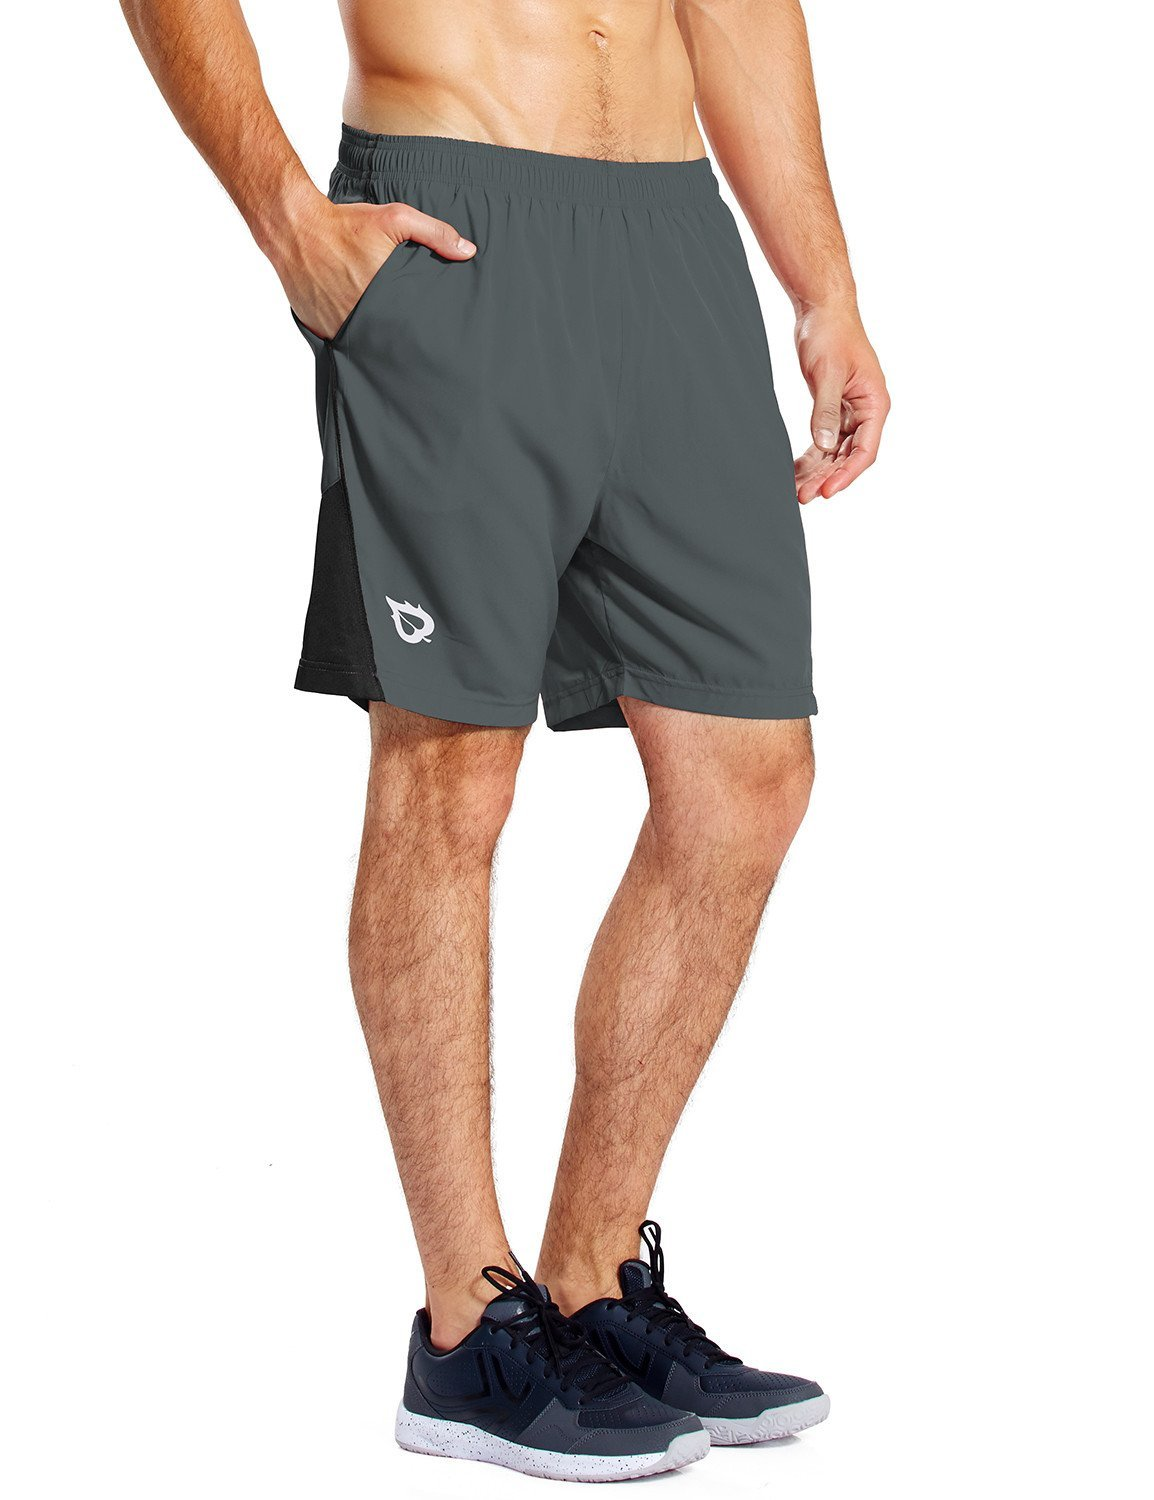 Baleaf Men's 7 Inches Quick Dry Workout Running Shorts Mesh Liner Zip Pockets Gray Size S